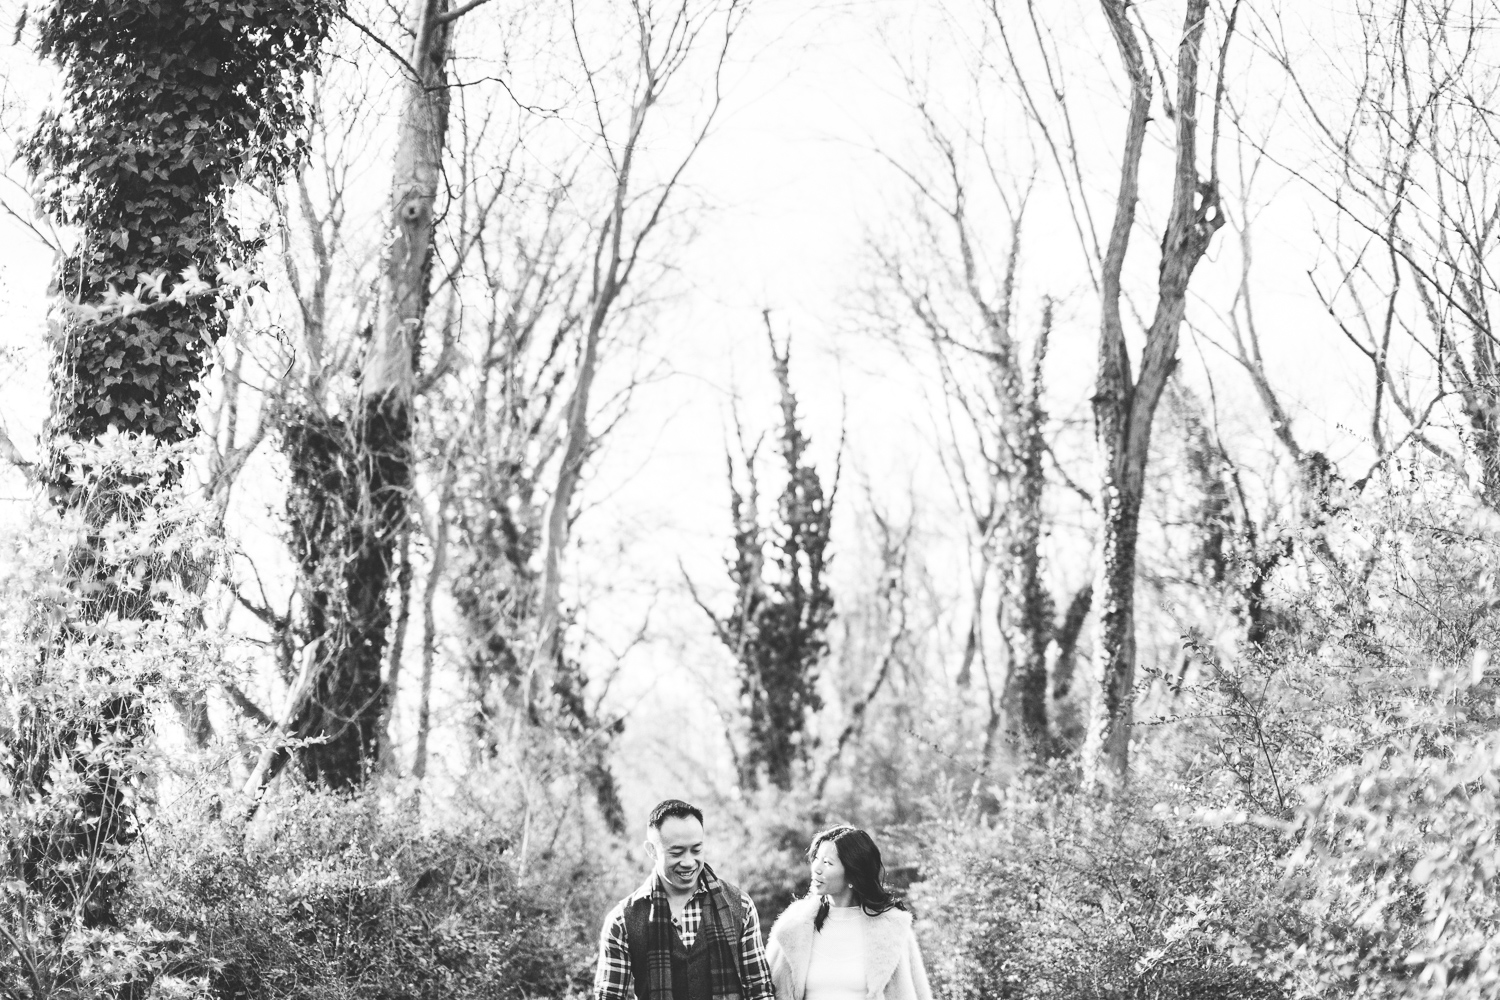 008 - black and white portrait of couple walking through forest together.jpg